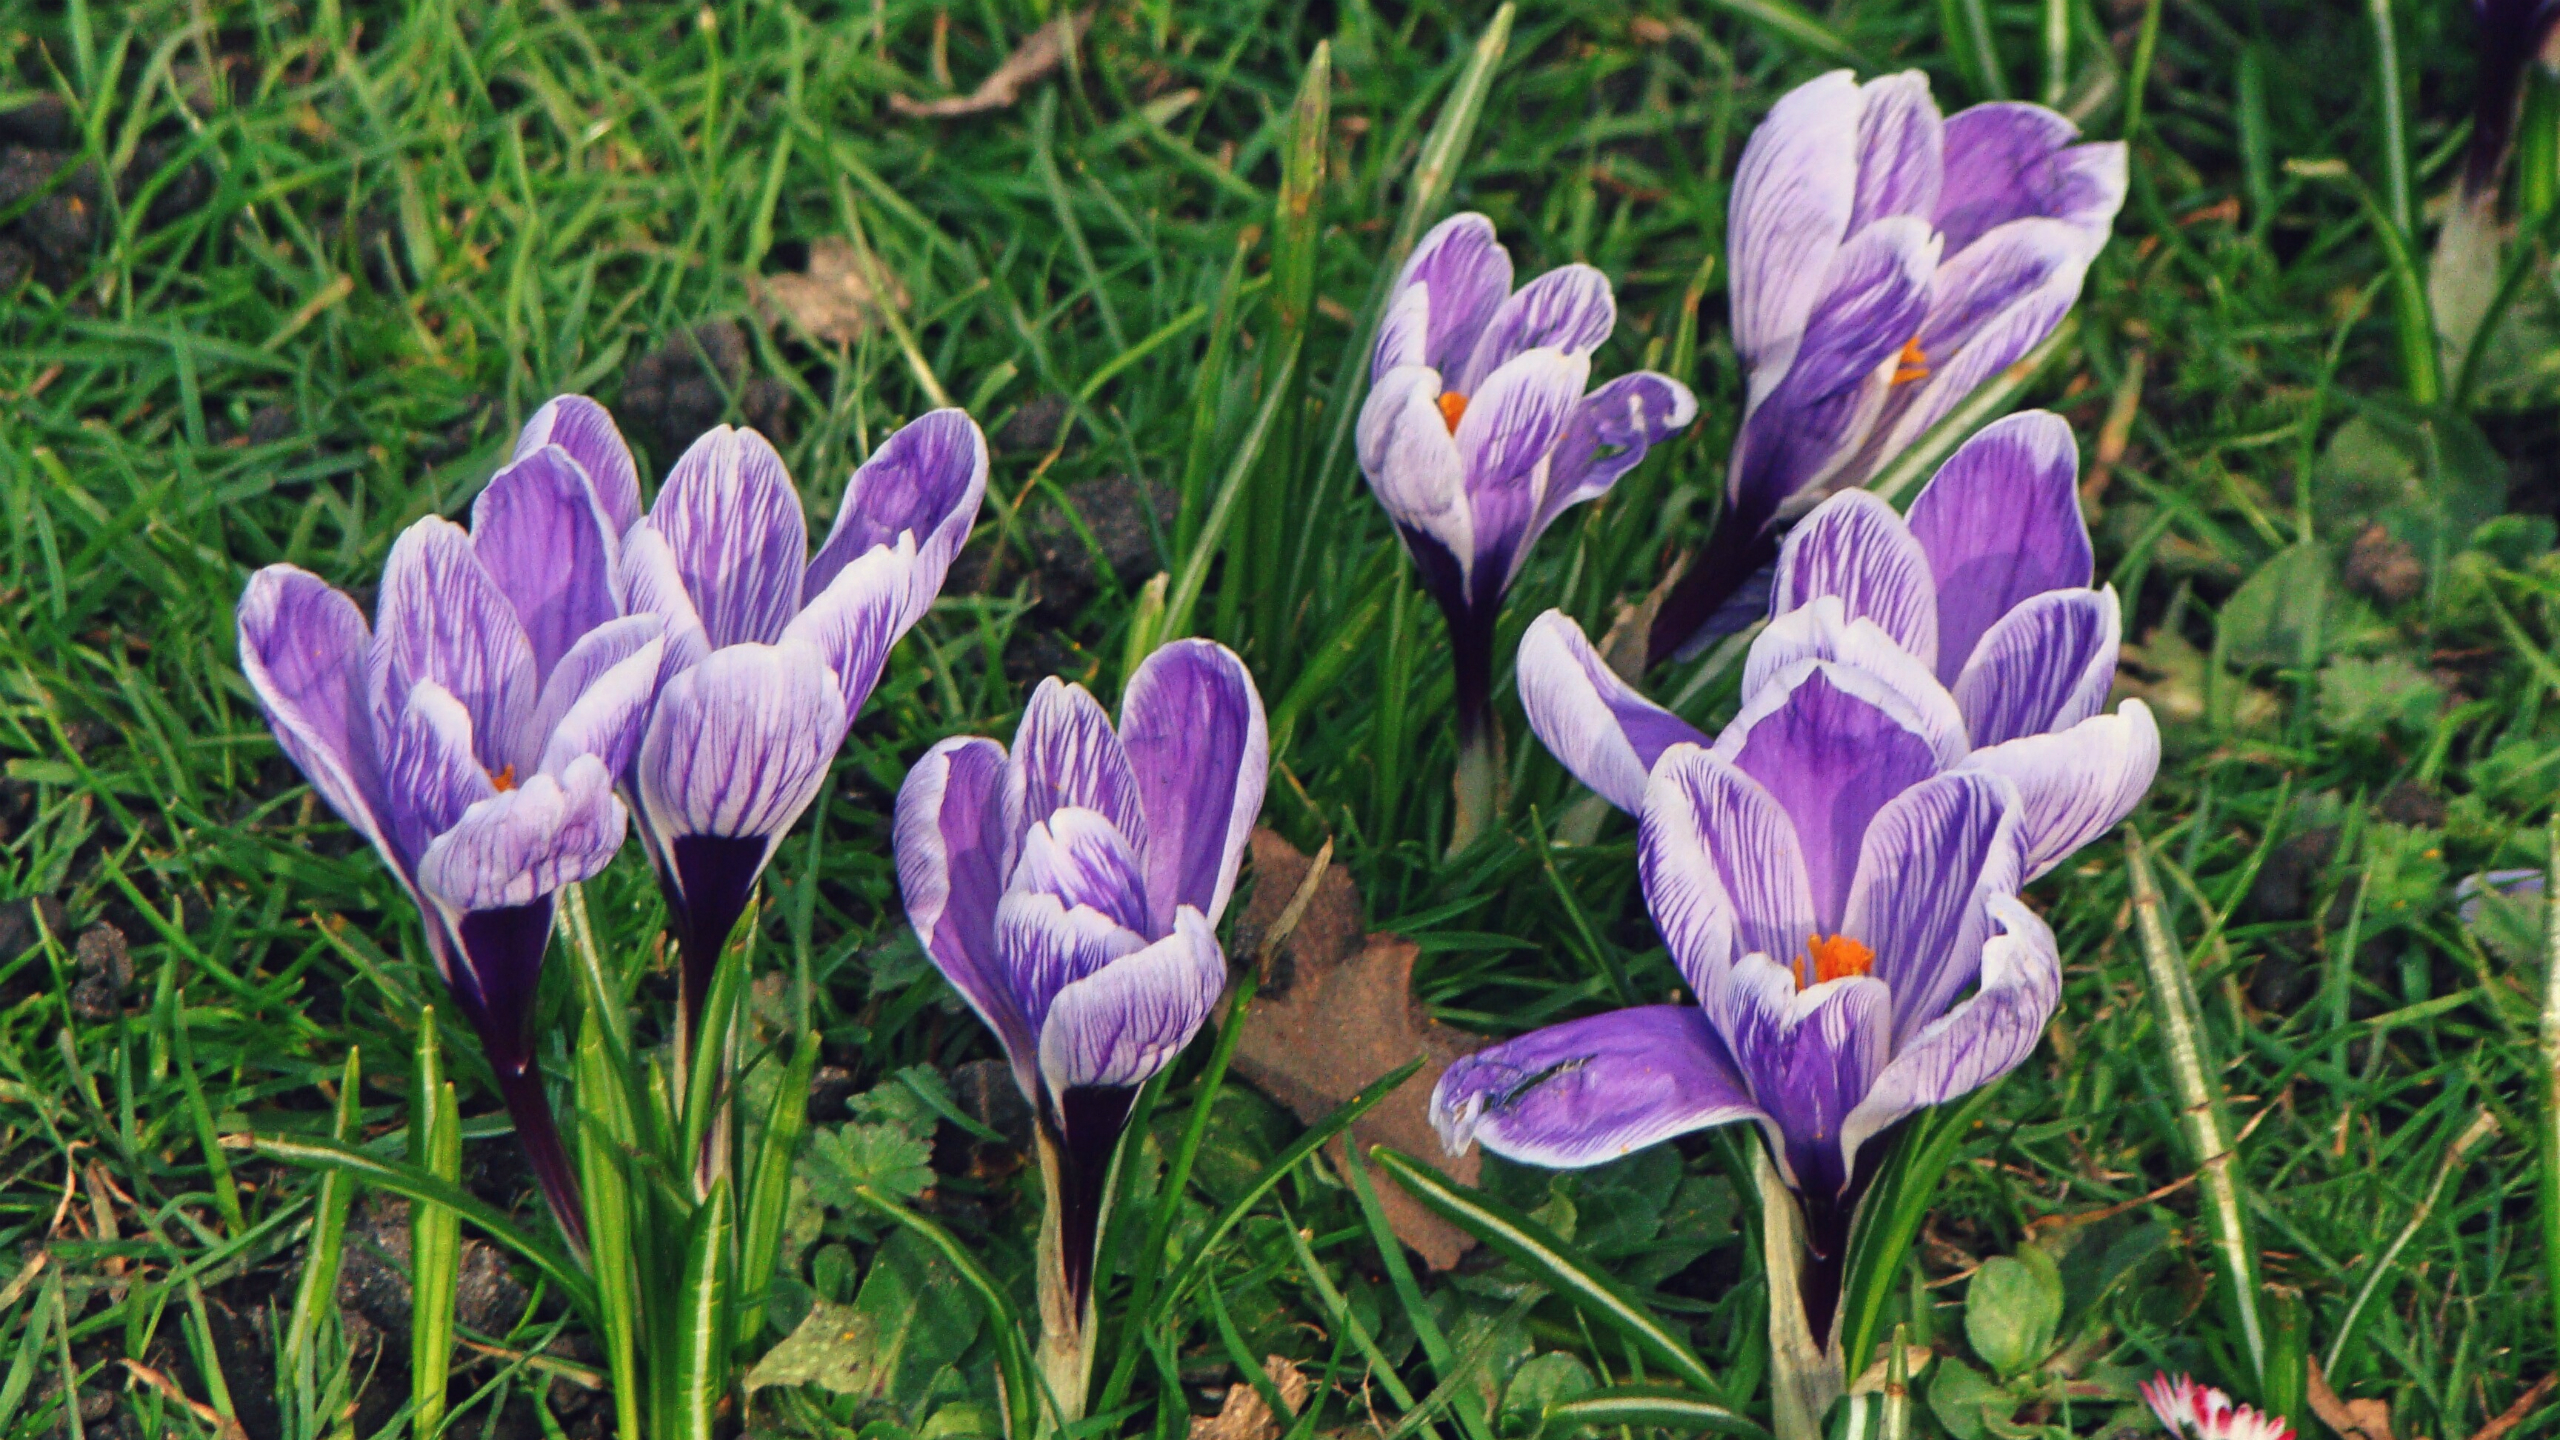 Stock images—2560×1440—Flowers—23—Crocuses—Purple and white